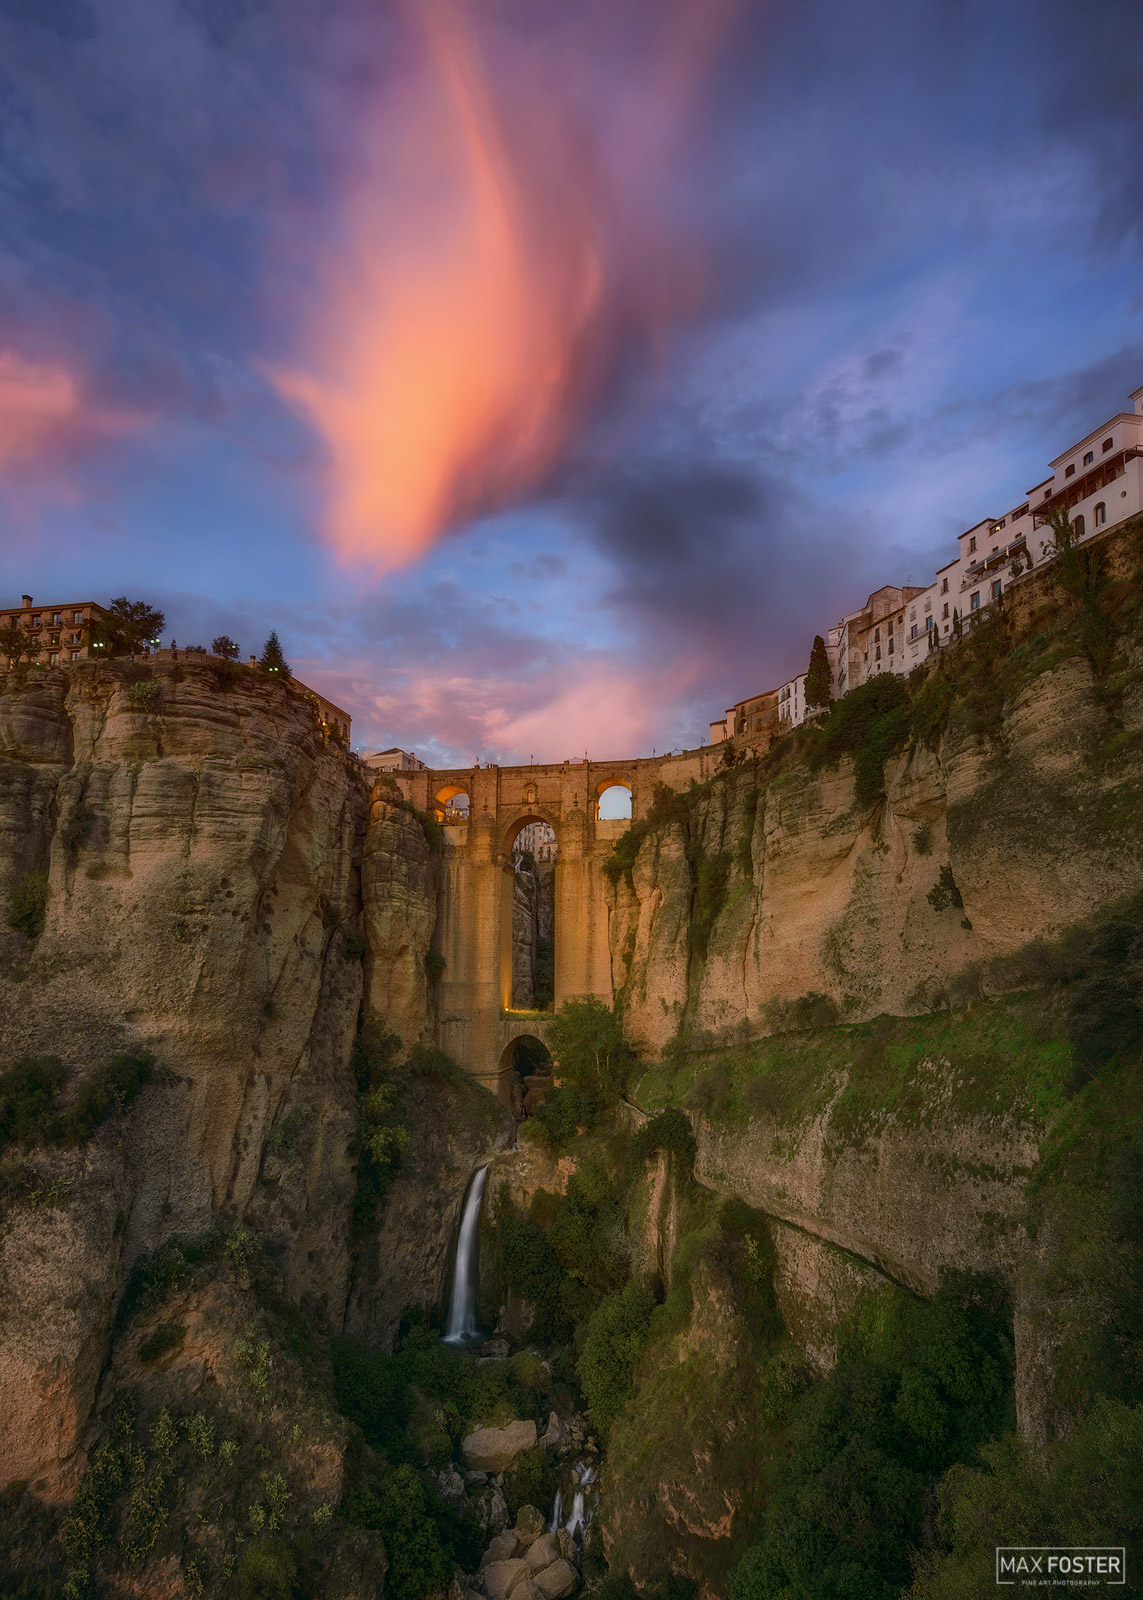 Spain, Legend of Ronda, Malaga, Andalusia, El Tajo Canyon, Puente Nuevo, photo